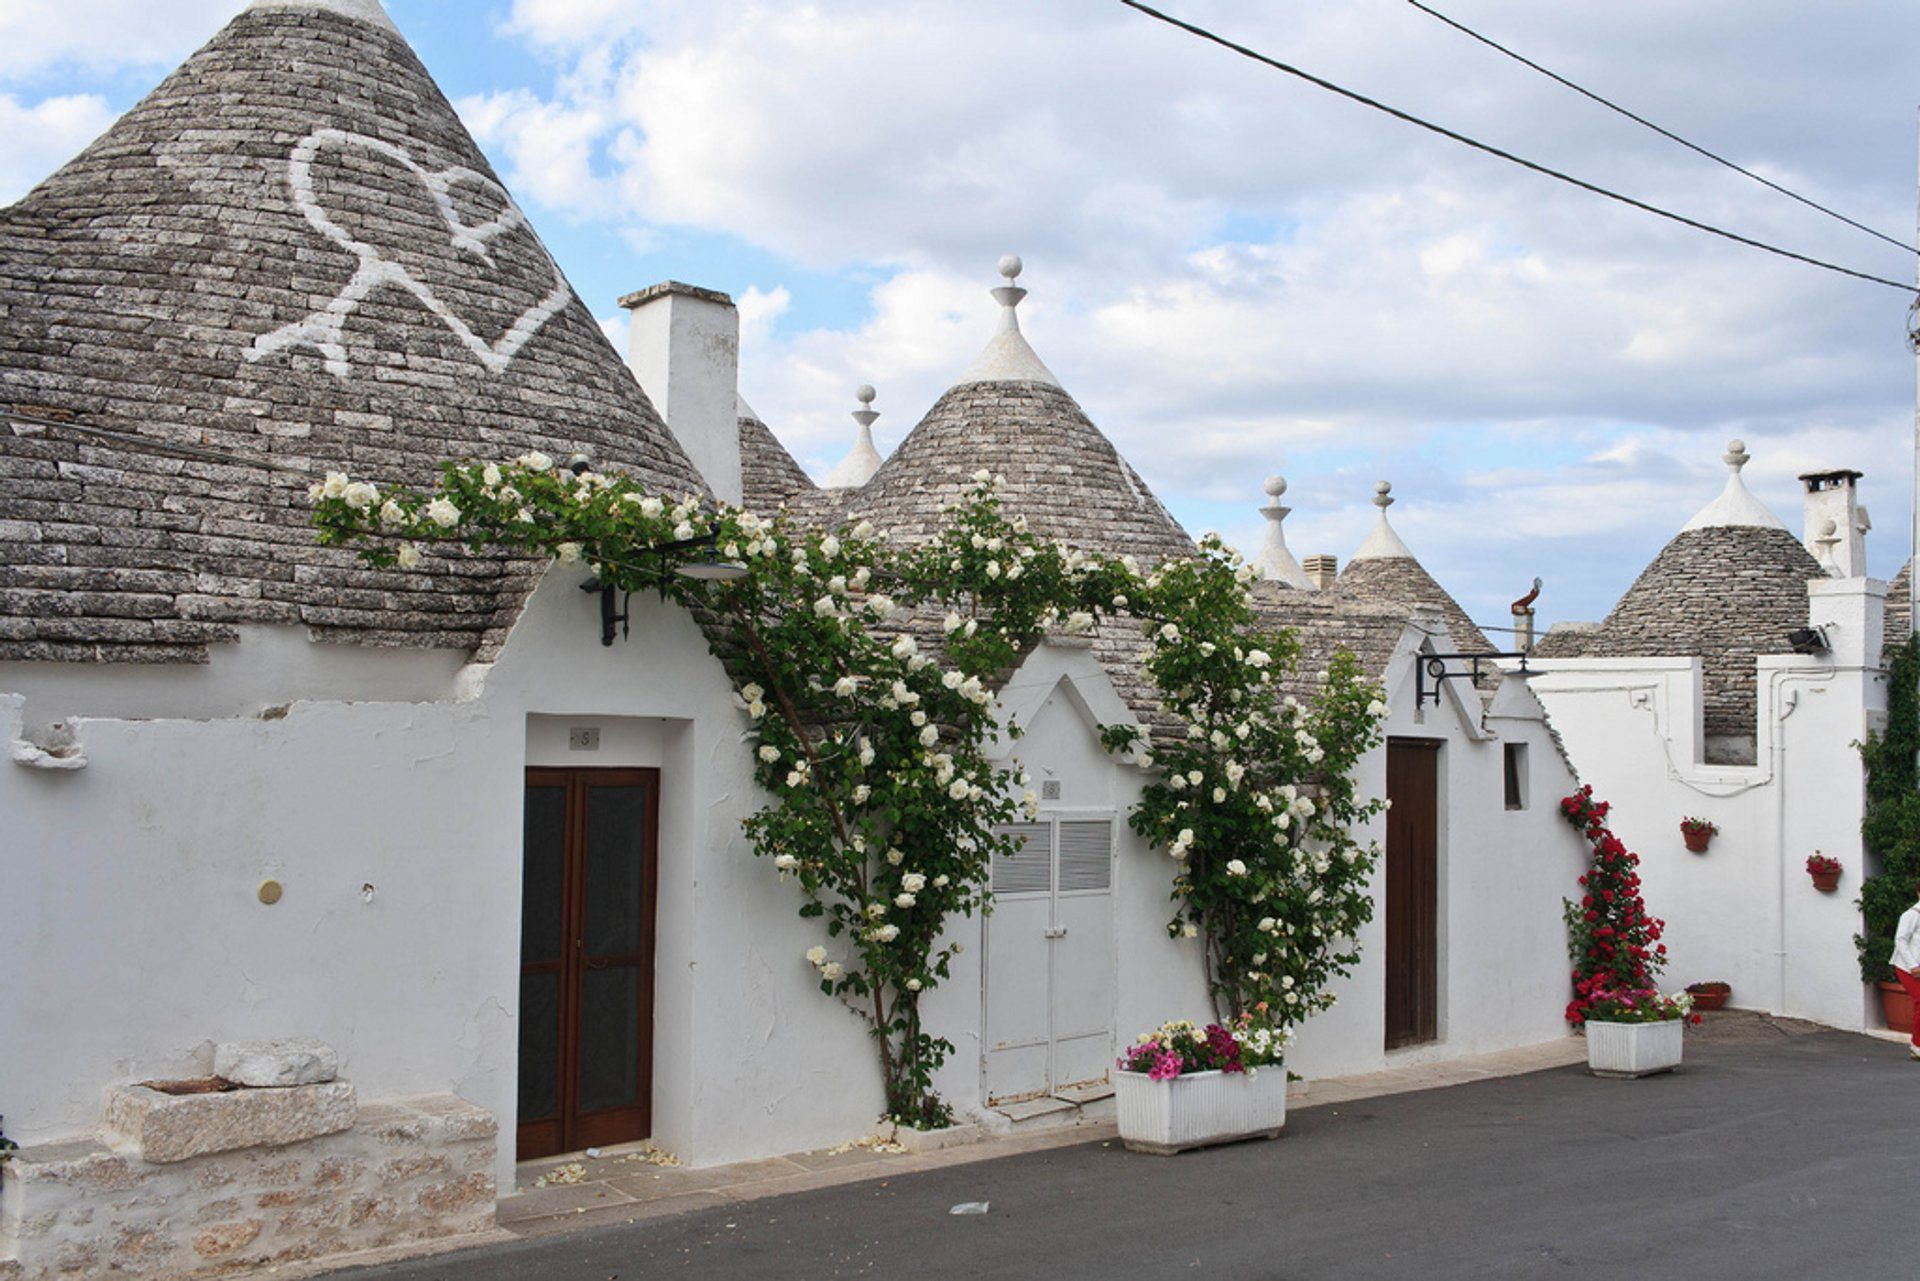 Trulli of Alberobello in Italy 2020 - Best Time